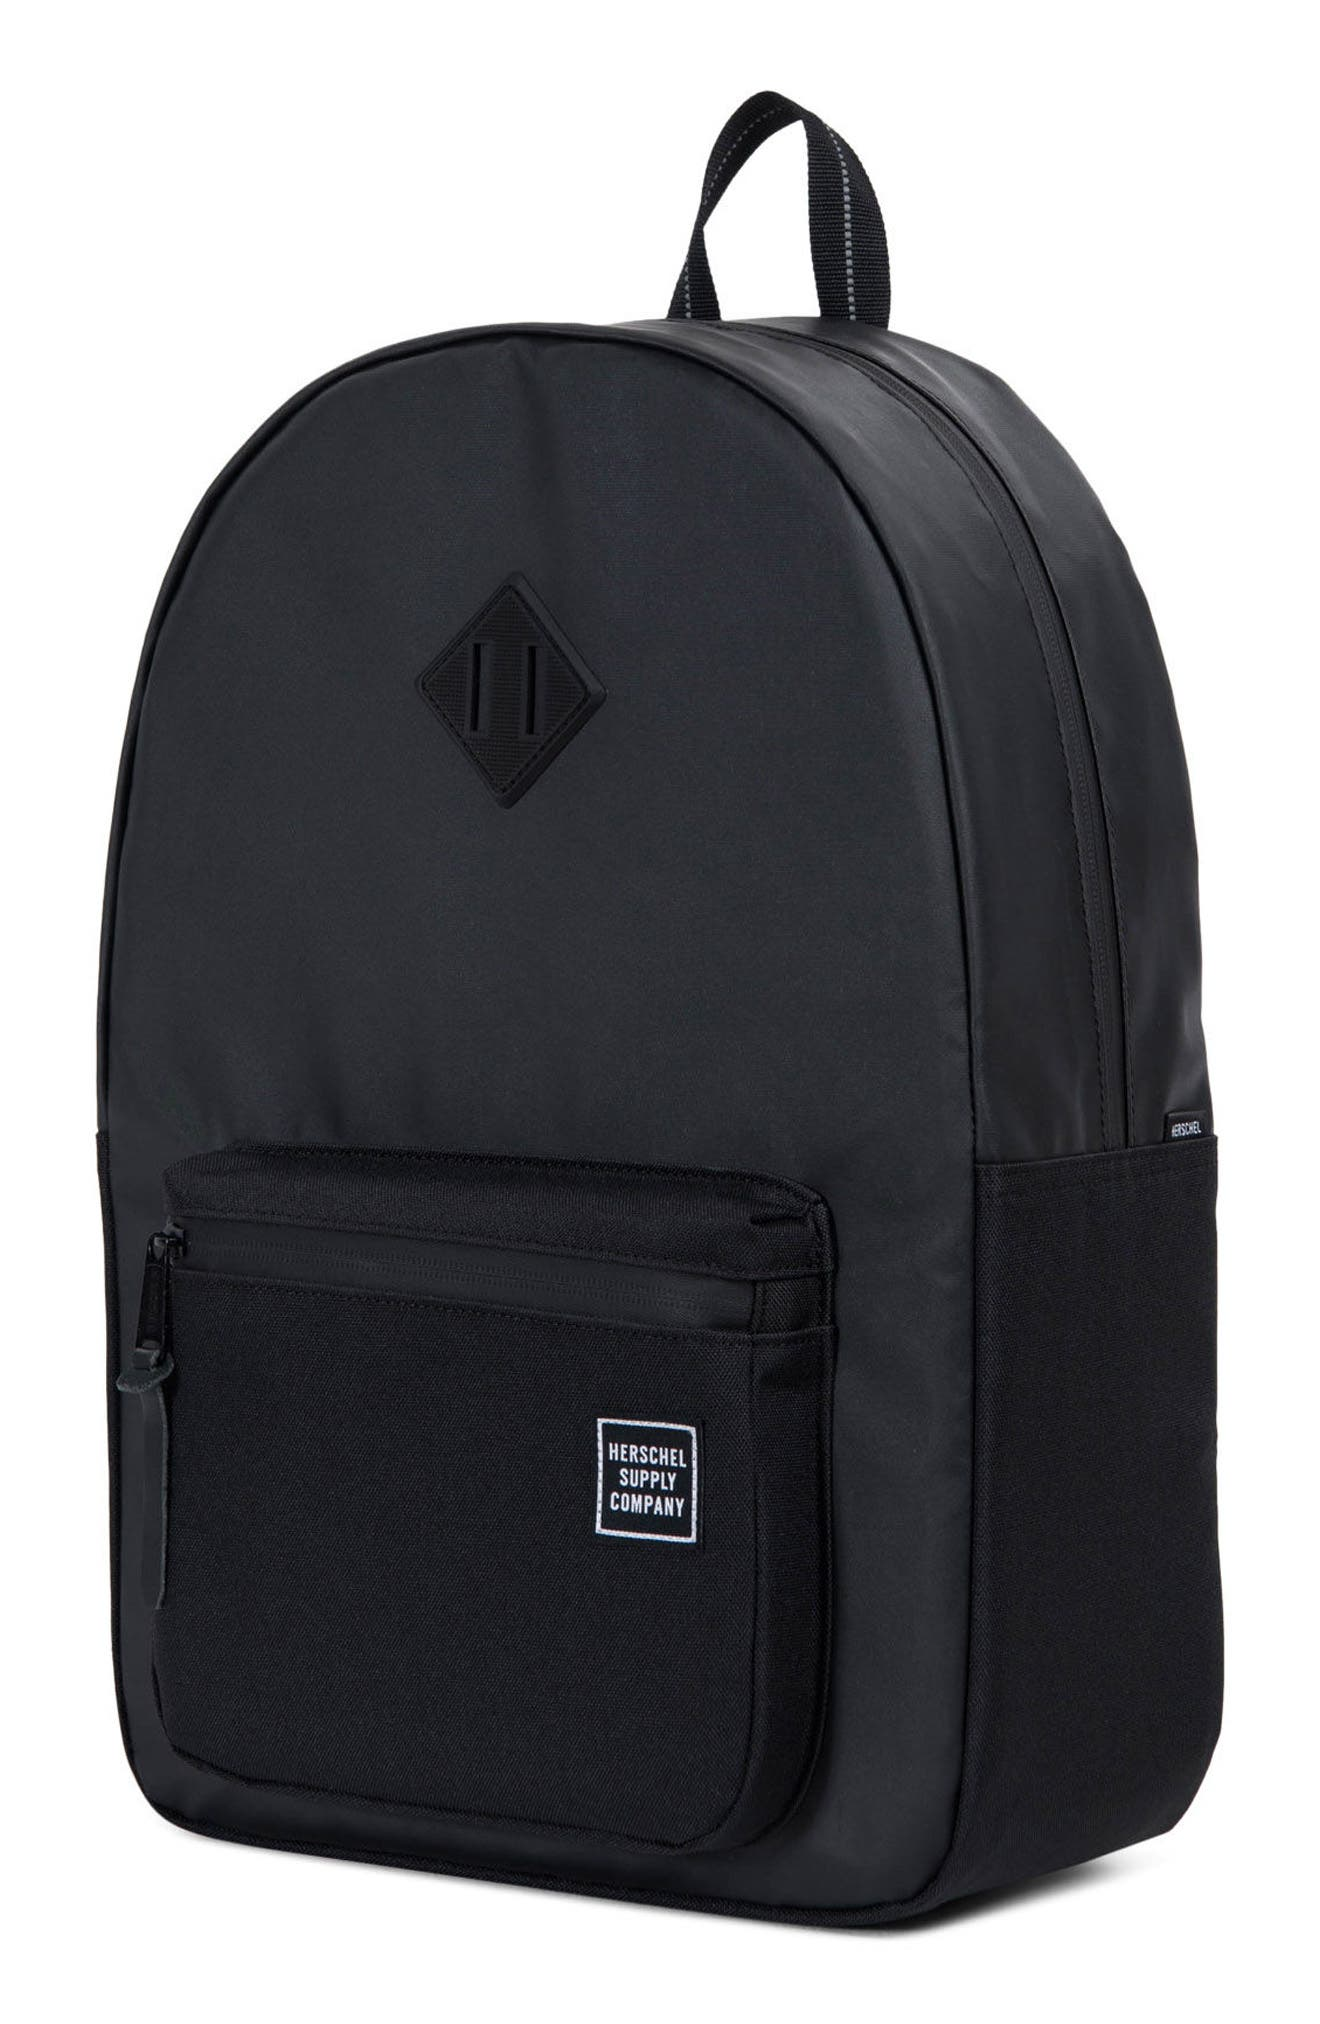 Ruskin Studio Collection Backpack,                             Alternate thumbnail 3, color,                             007